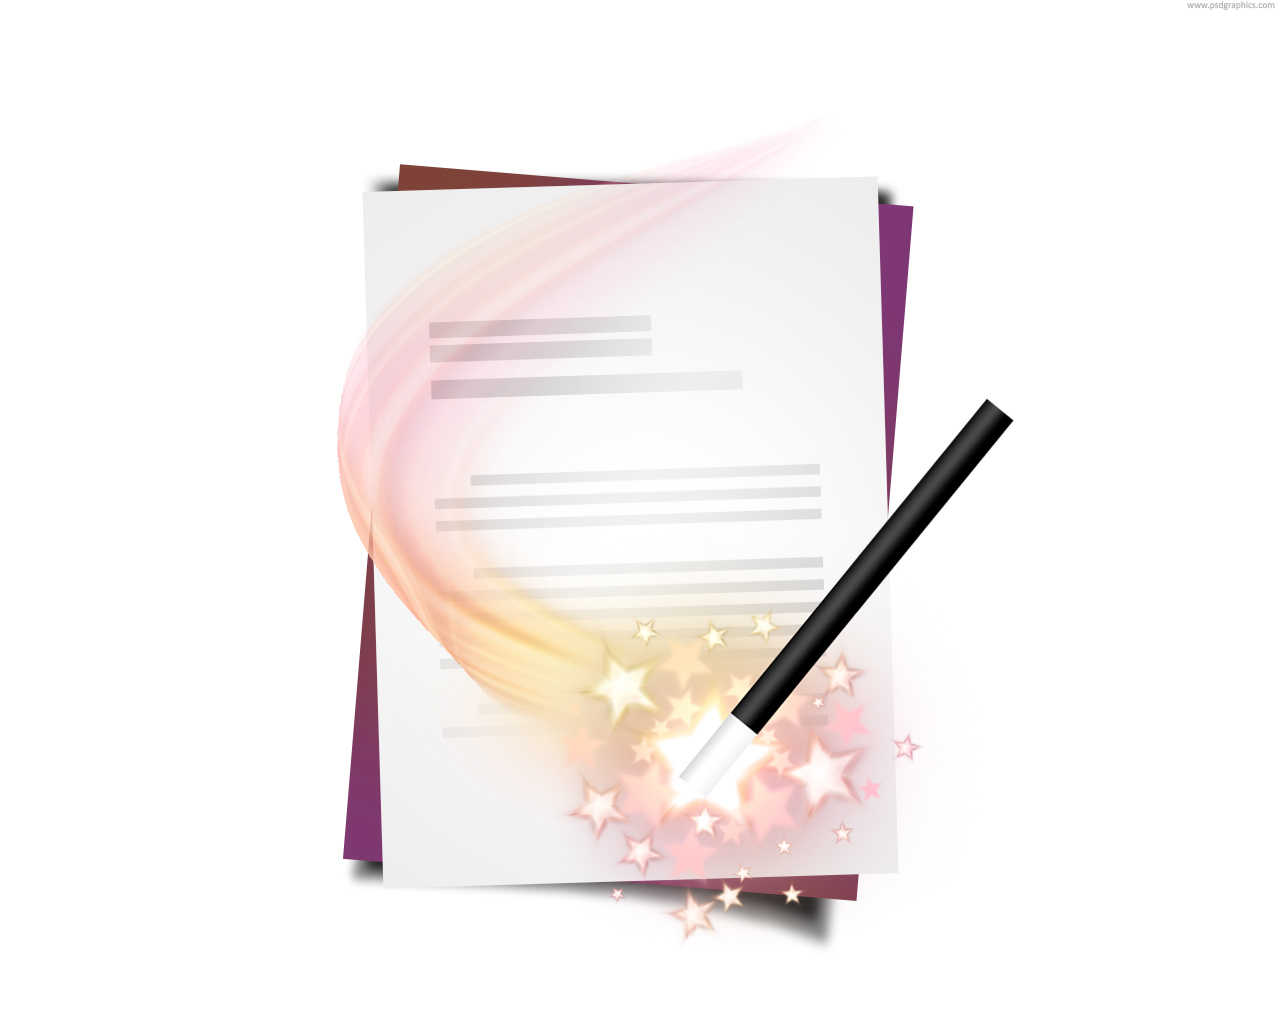 Document wizard icon (PSD) | PSDGraphics: www.psdgraphics.com/psd/document-wizard-icon-psd